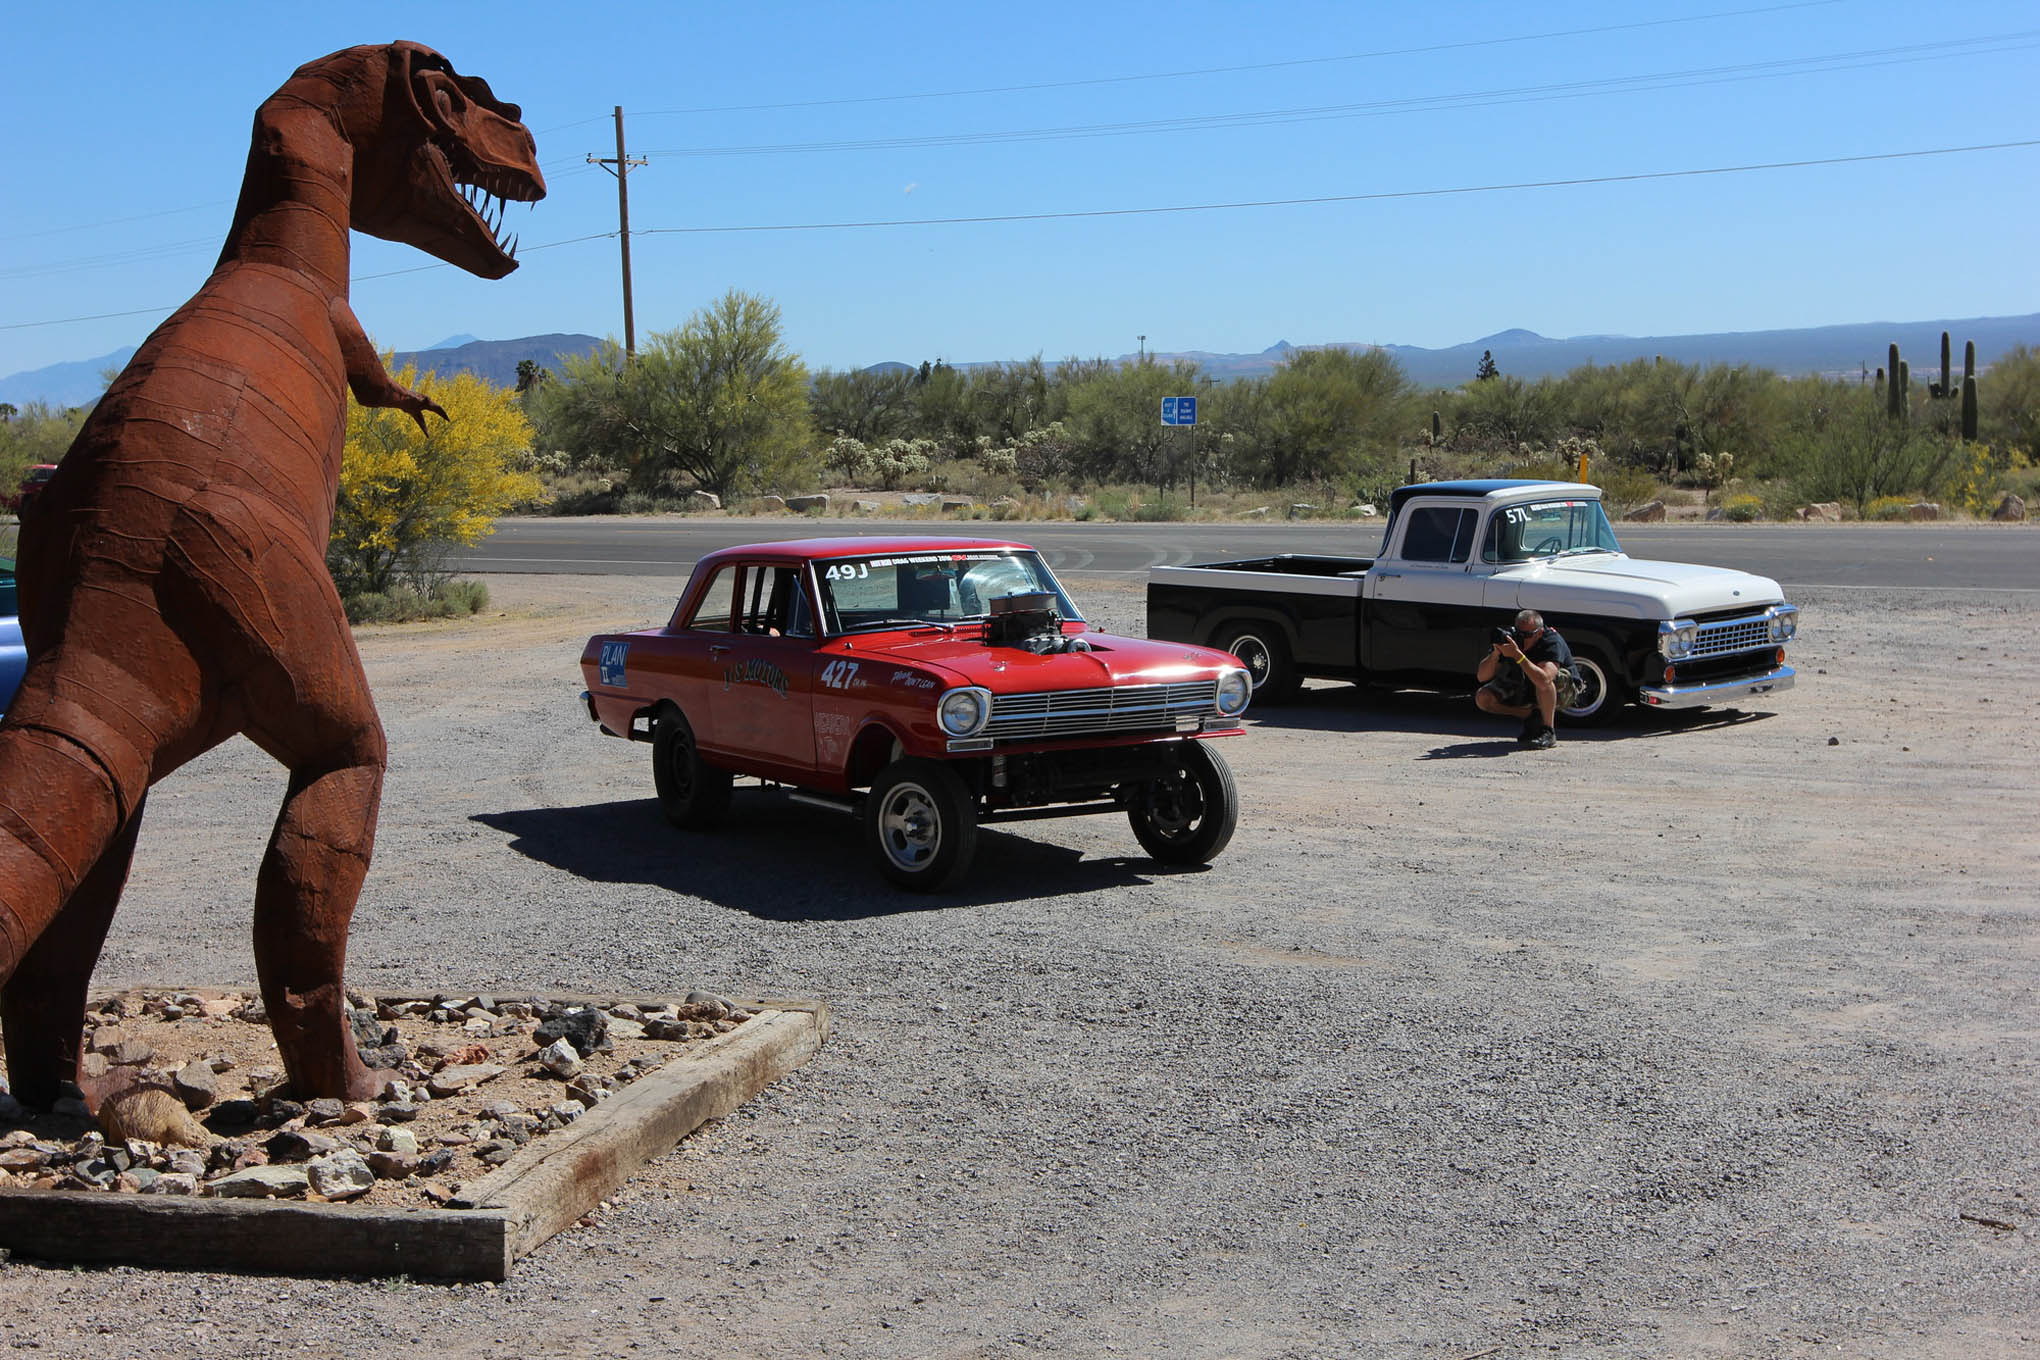 Dirt roads and dinosaurs are what makes up the majority of Day 2, checkpoint two. Also a bunch of cool muscle cars.